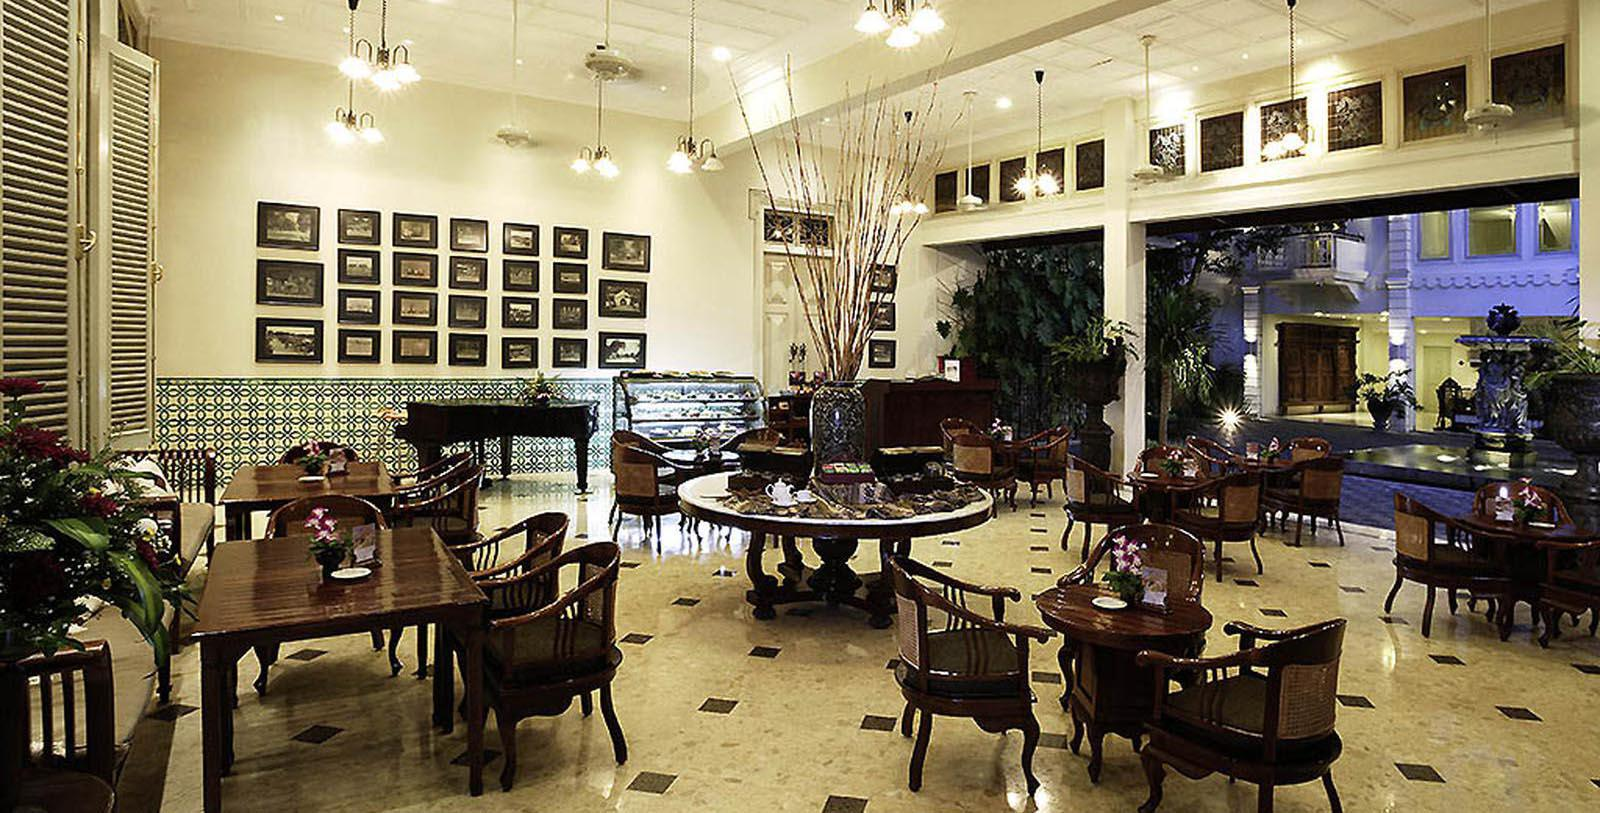 Image of 1918 Terrace Lounge at The Phoenix Hotel Yogyakarta - MGallery by Sofitel, 1928, Member of Historic Hotels Worldwide, in Yogyakarta, Indonesia, Taste